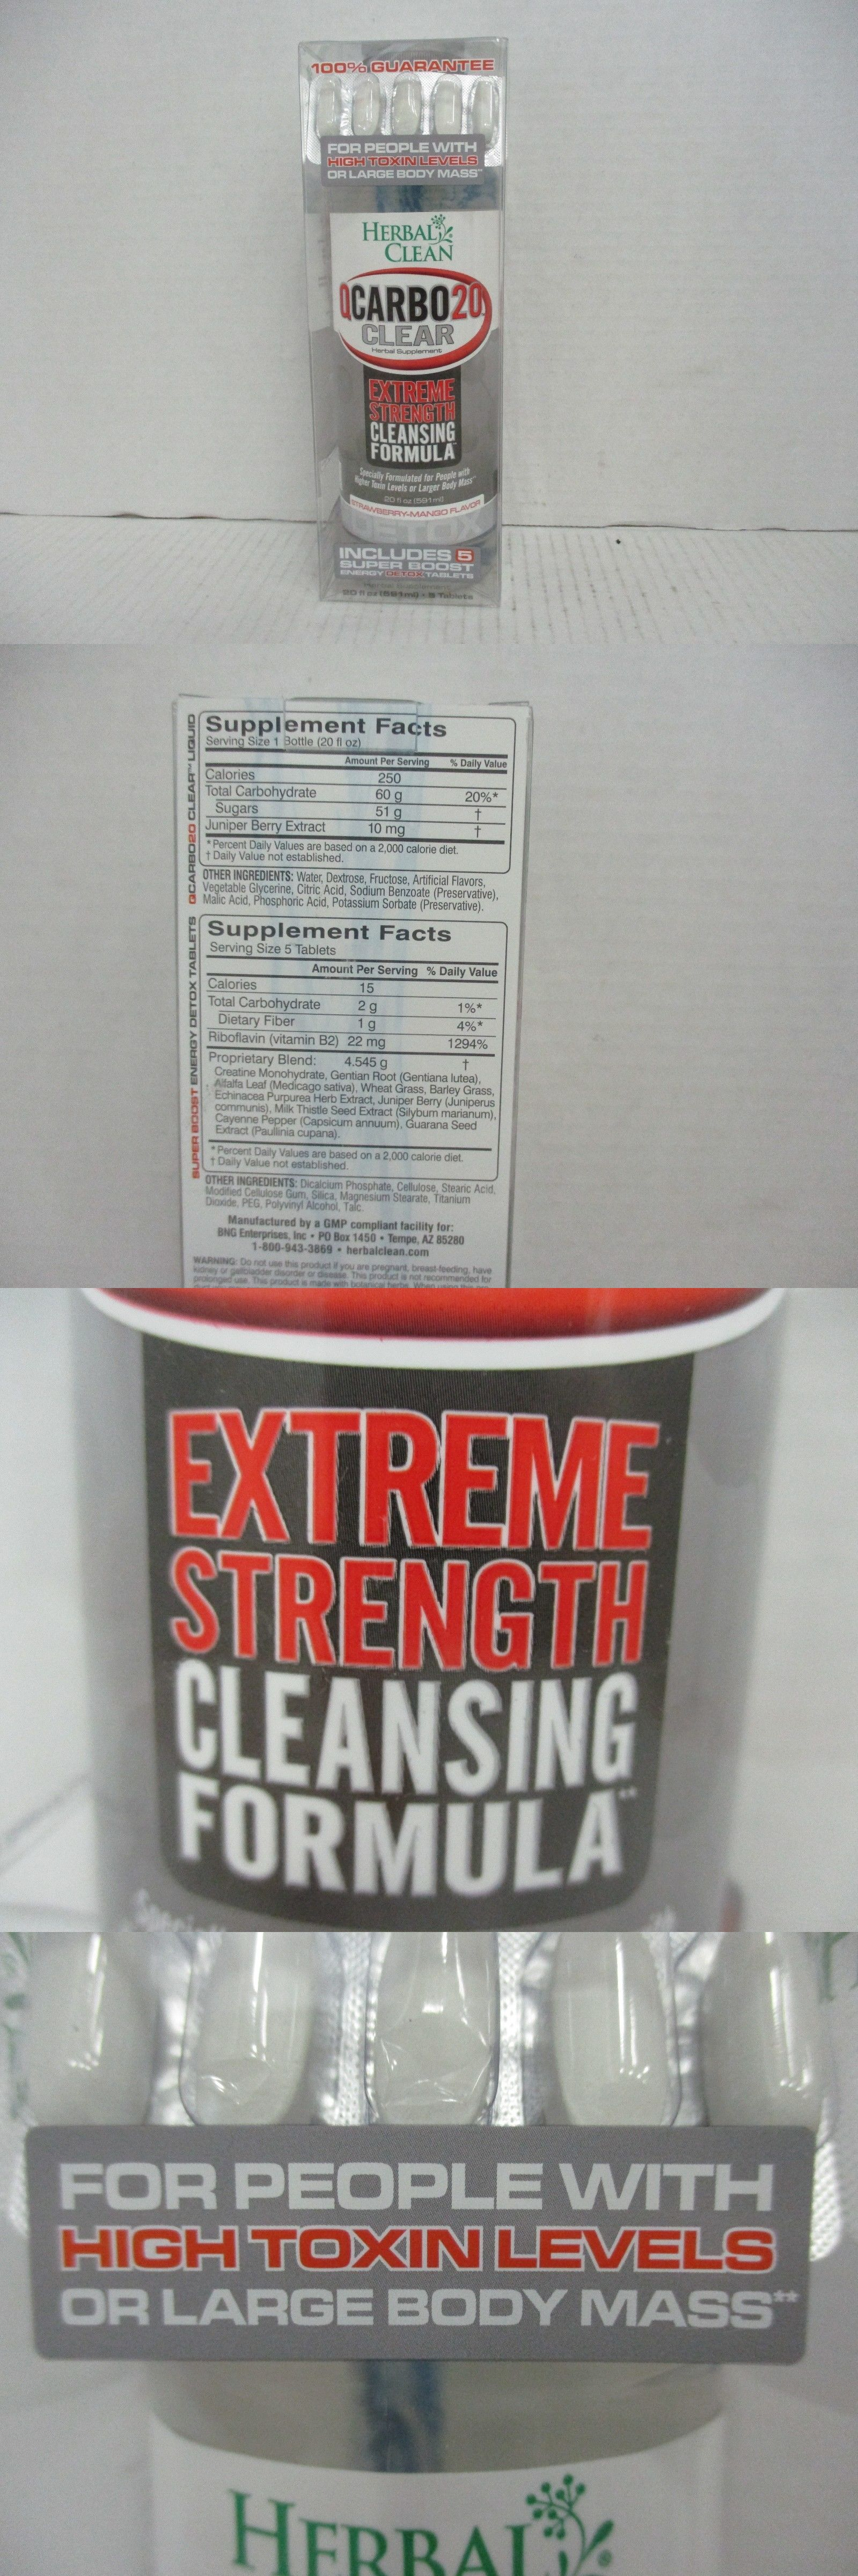 HERBAL CLEAN QCARBO20 CLEAR EXTREME+BOOST STRWBRRY-MANGO